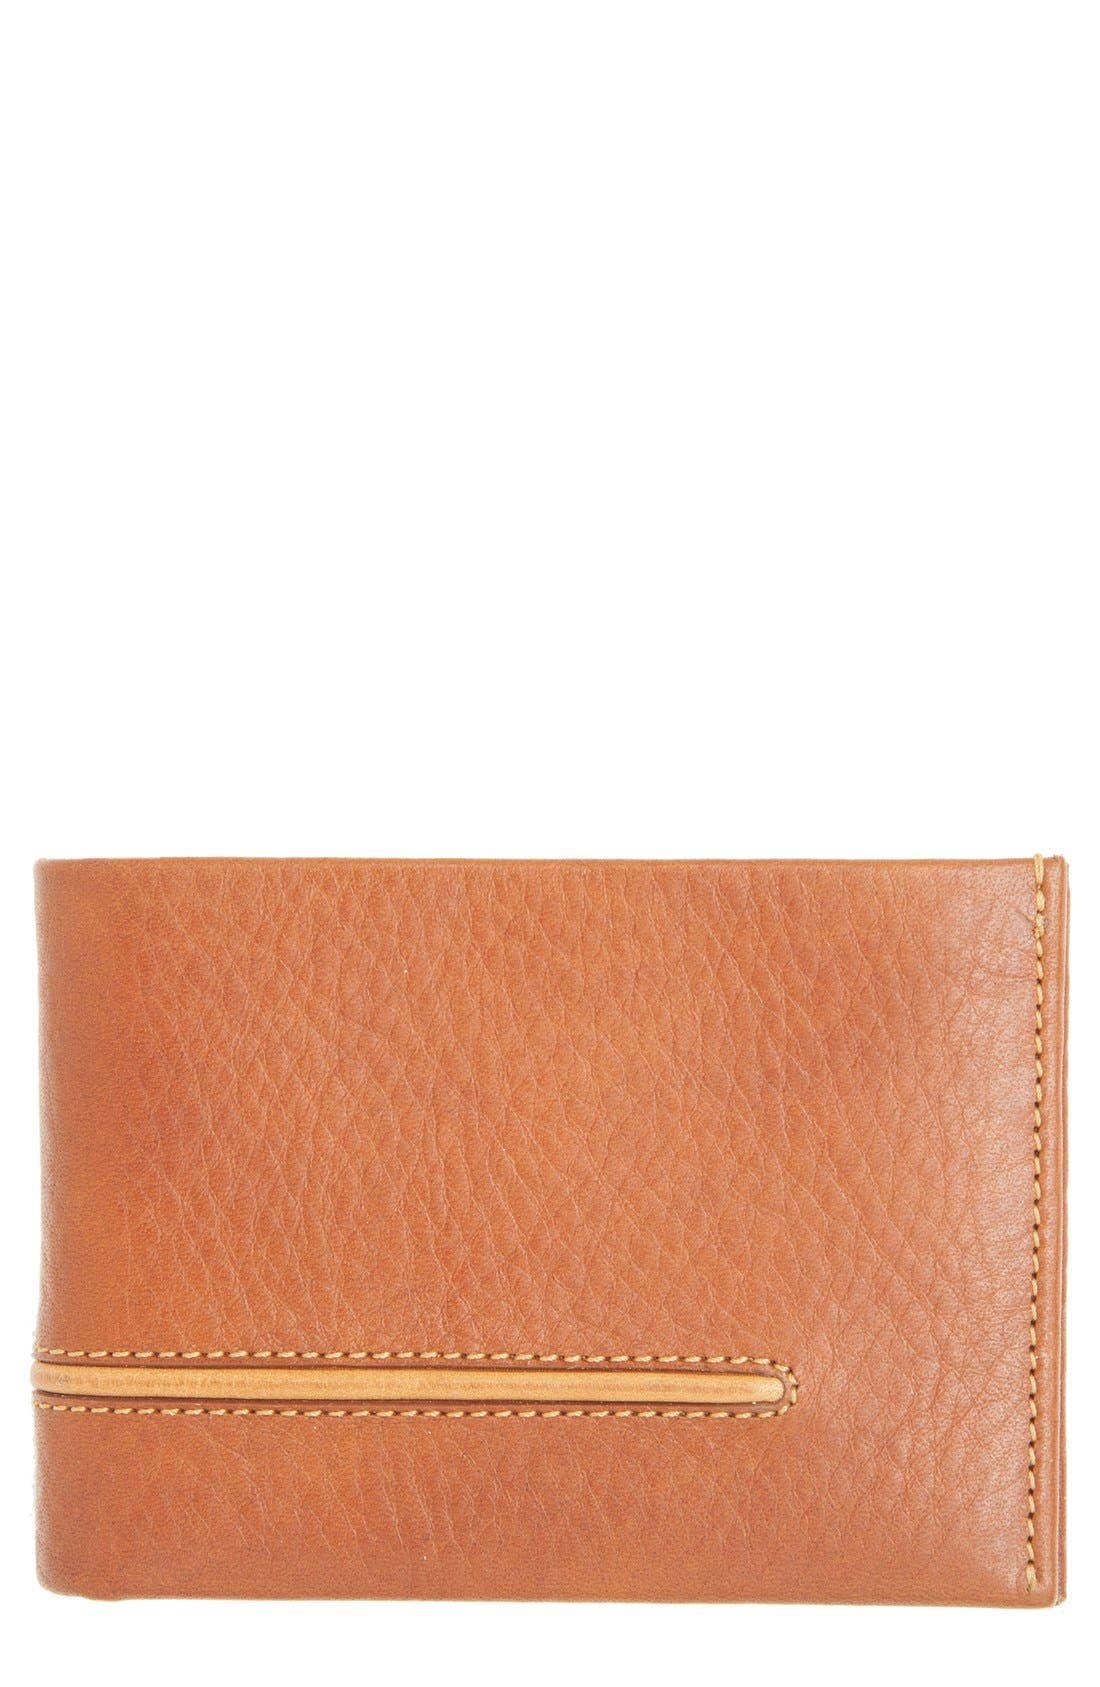 Alternate Image 1 Selected - Tommy Bahama Leather L-Fold Wallet